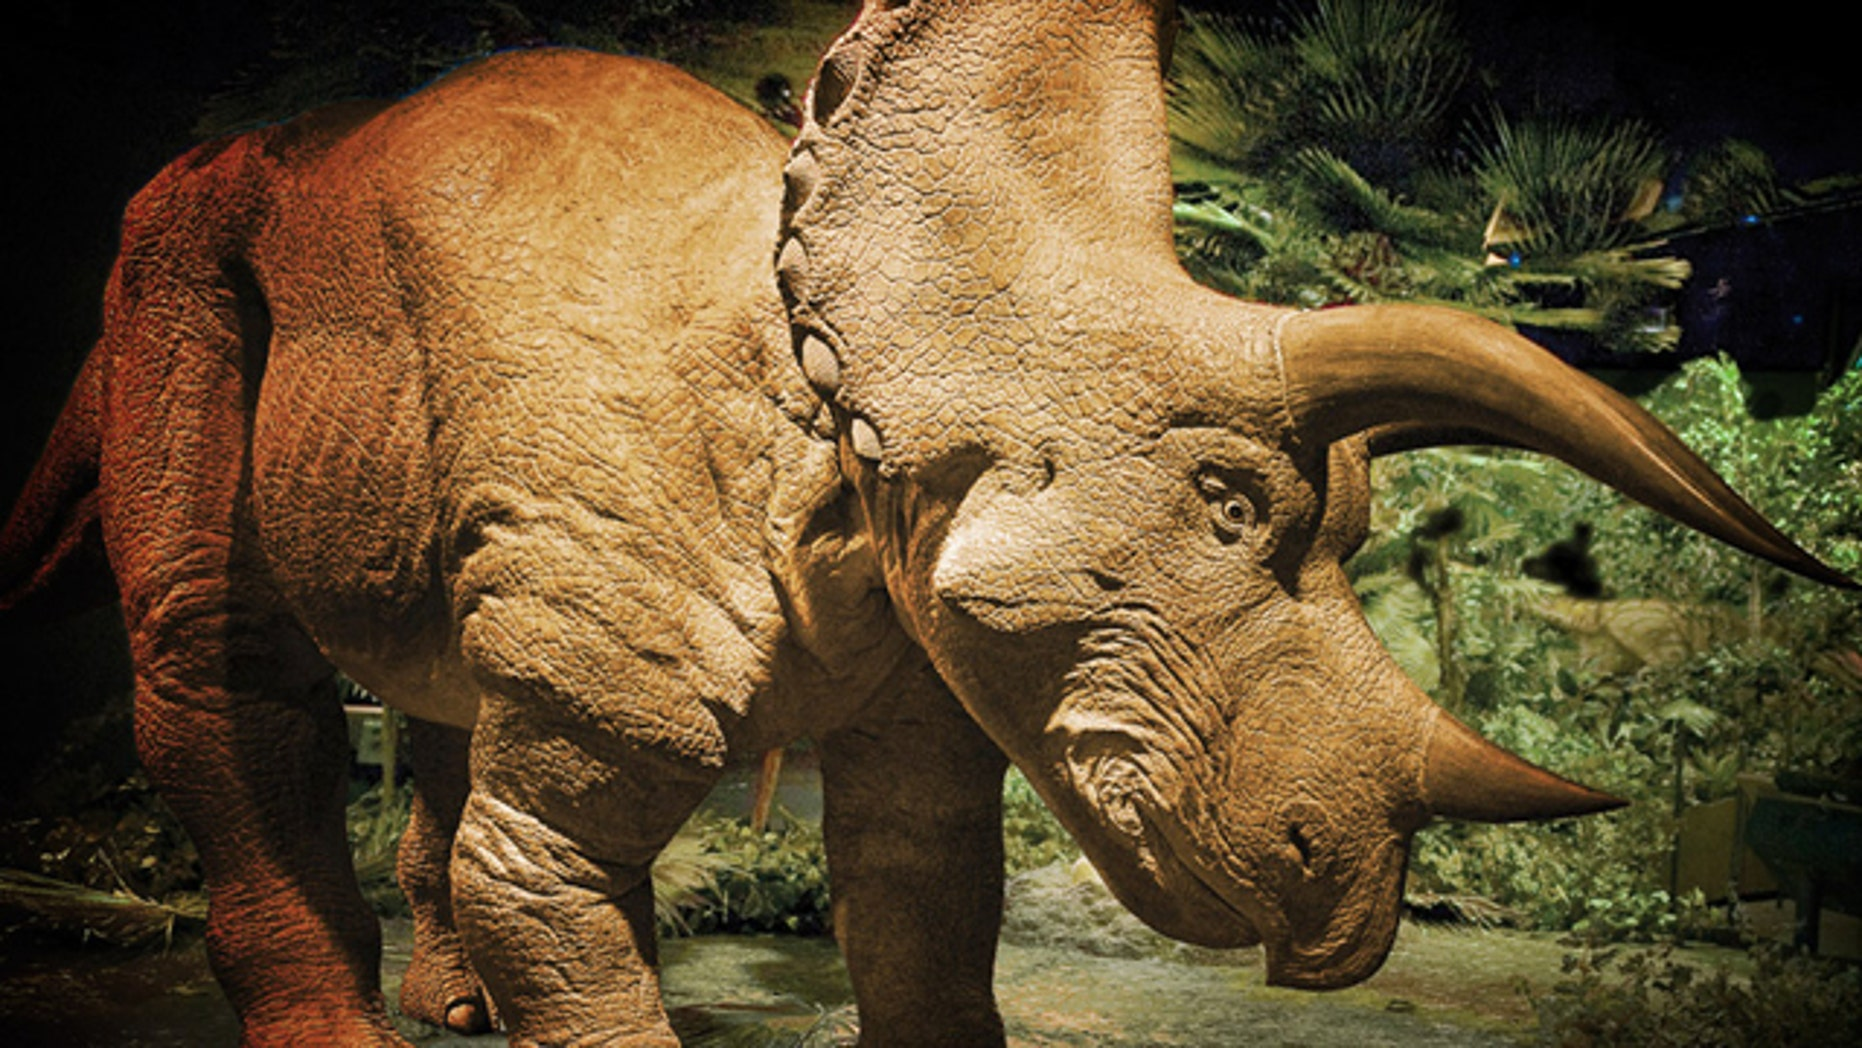 A 20-foot tall animatronic Triceratops.